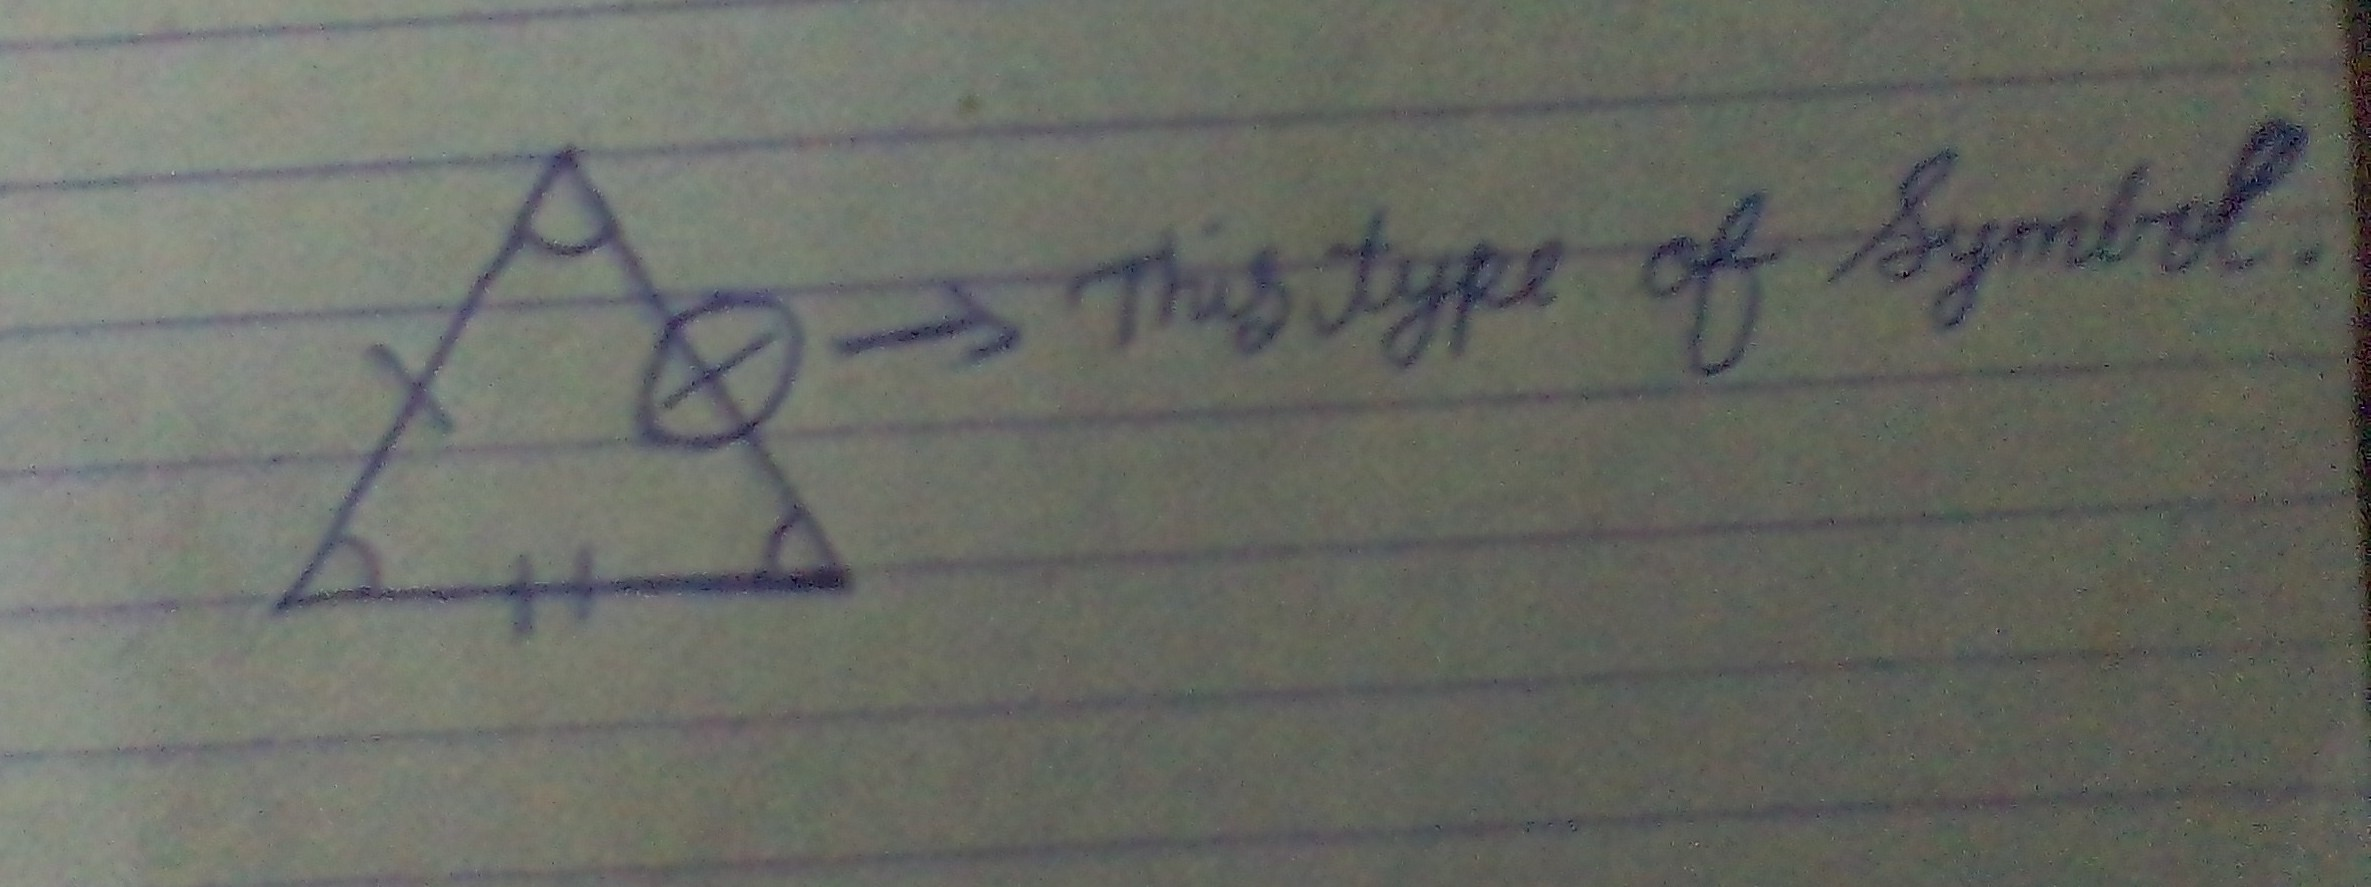 Can We You This Type Of Symbol Shown In This Picture To Depict All